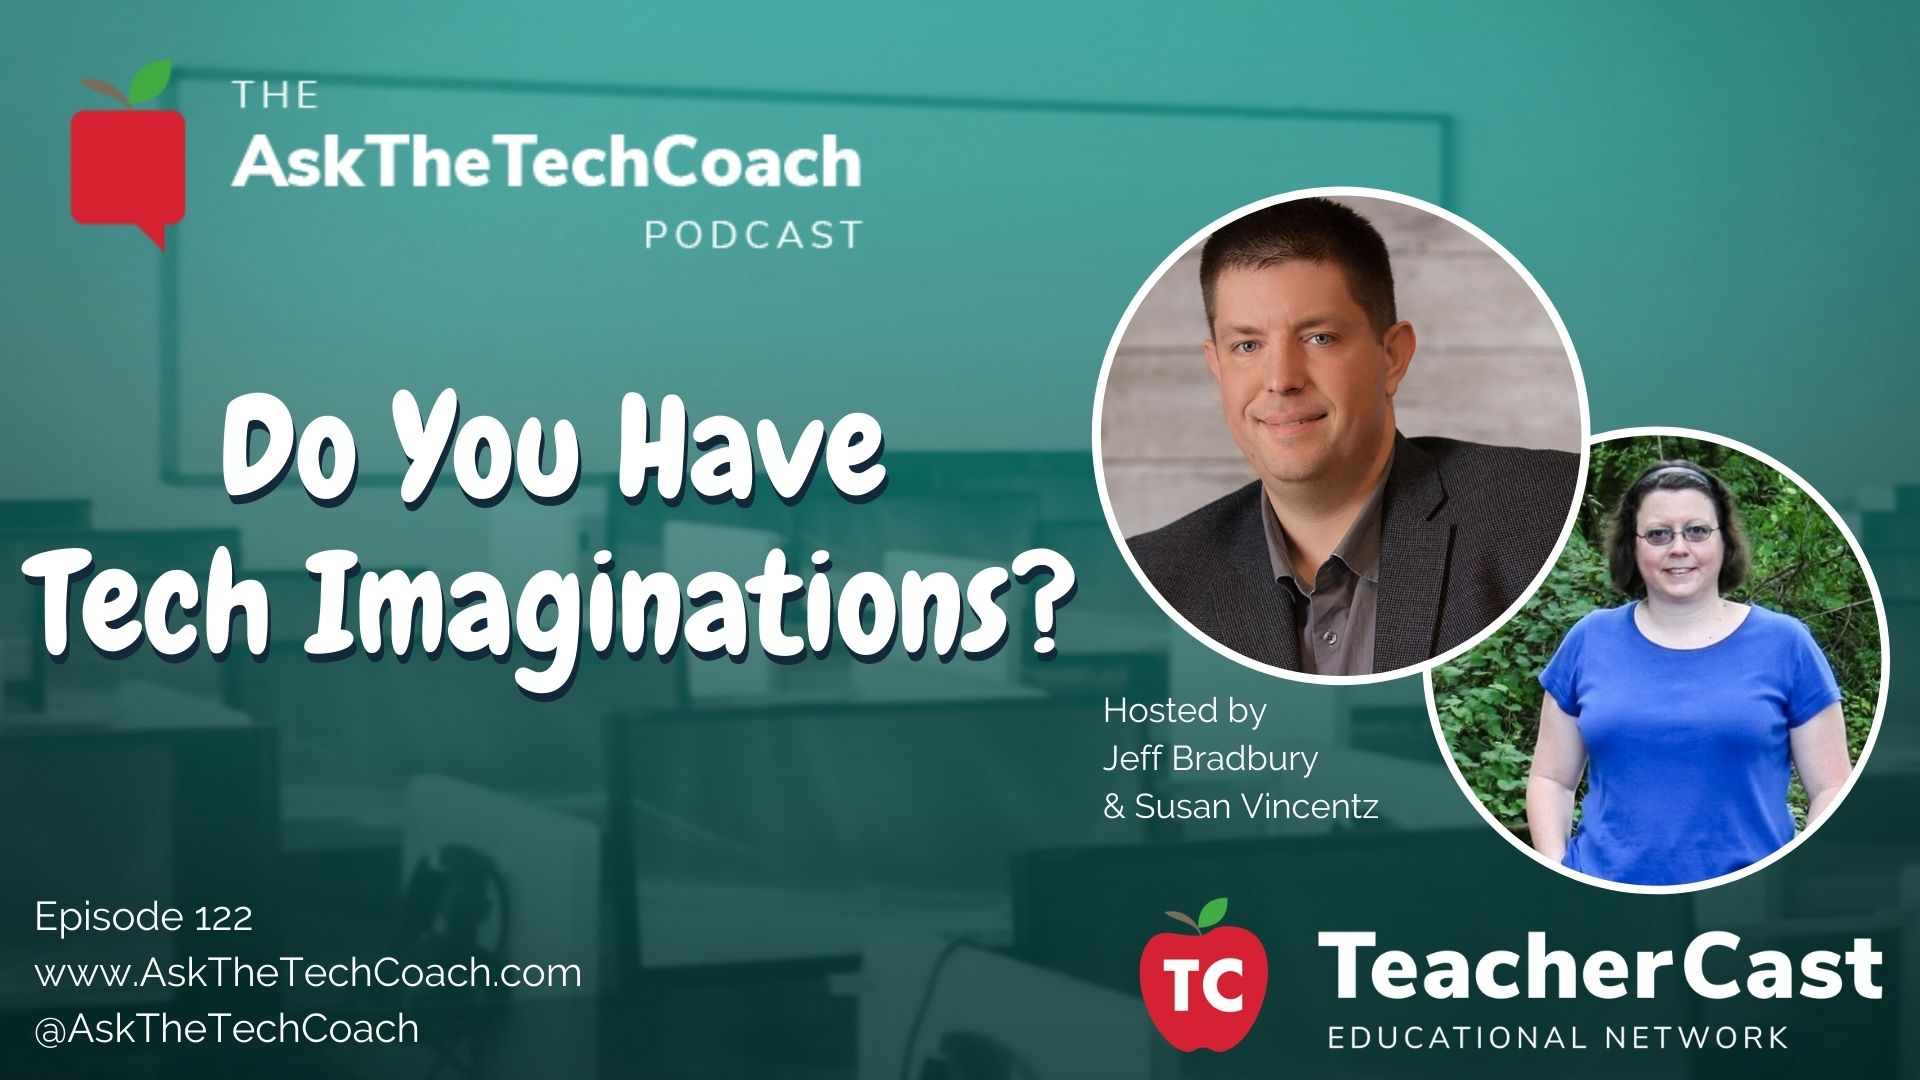 Podcast: Do you have Tech Imaginations?